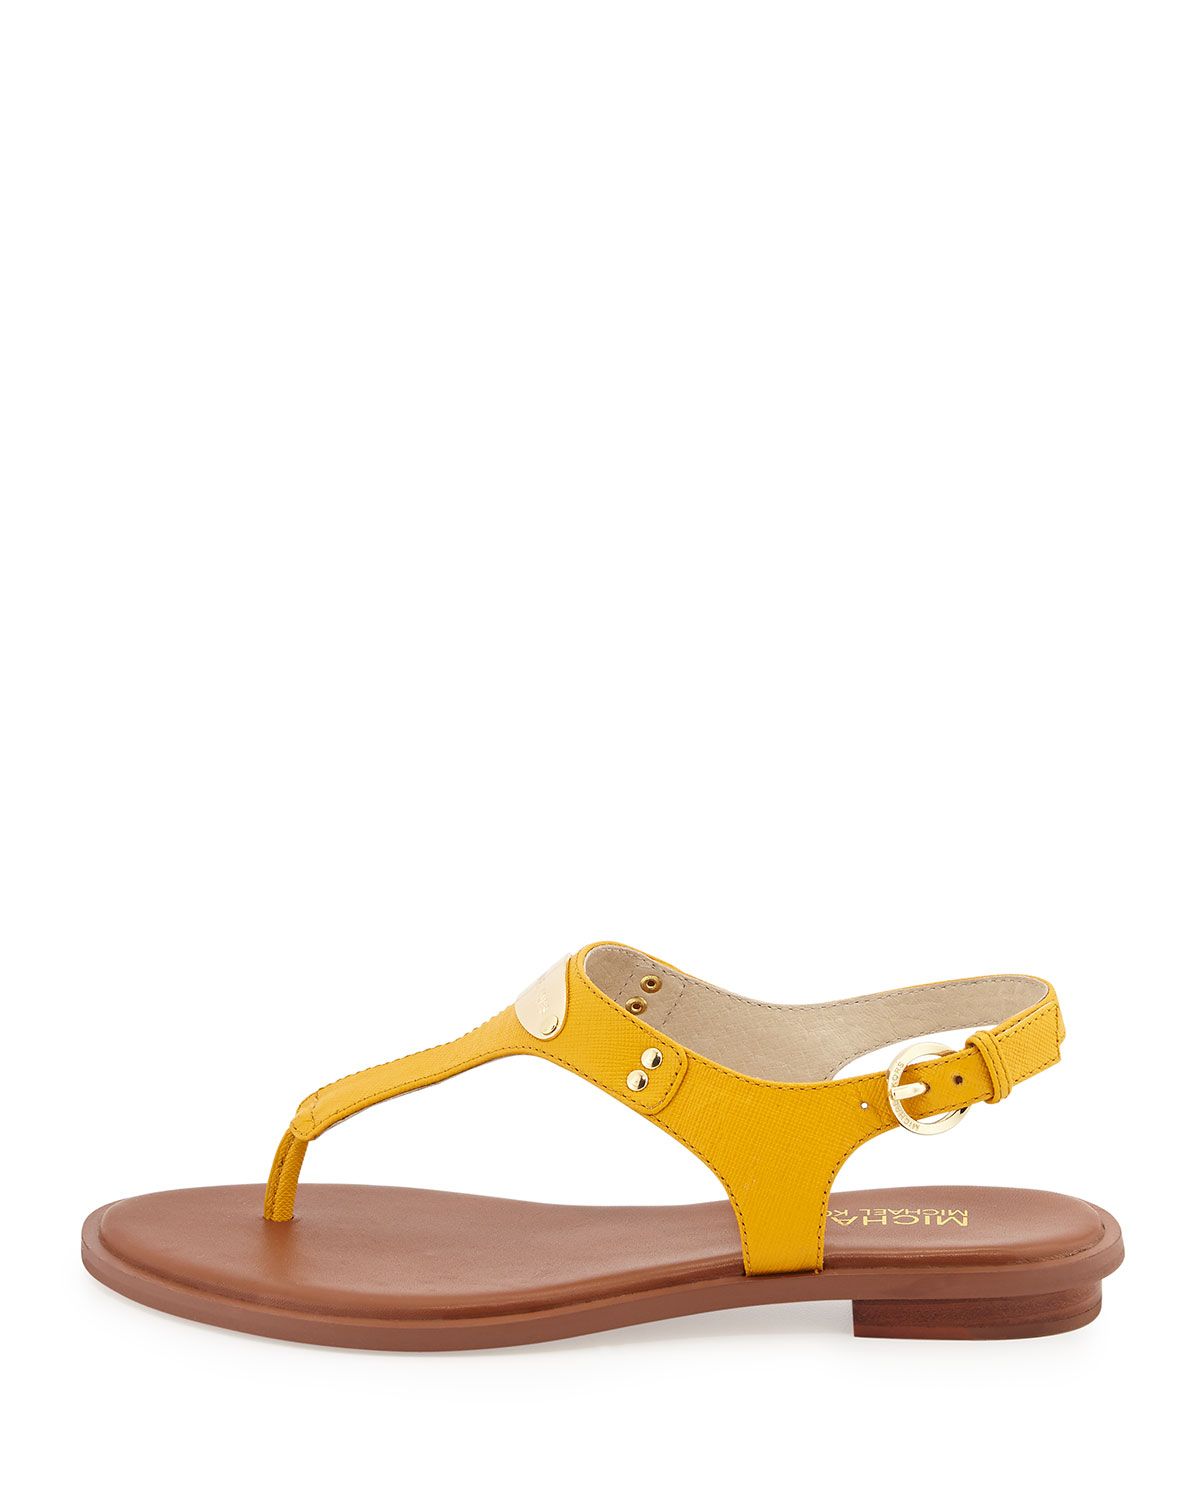 4ef1d9ddbb1 Lyst - MICHAEL Michael Kors Plate Thong Sandals in Yellow